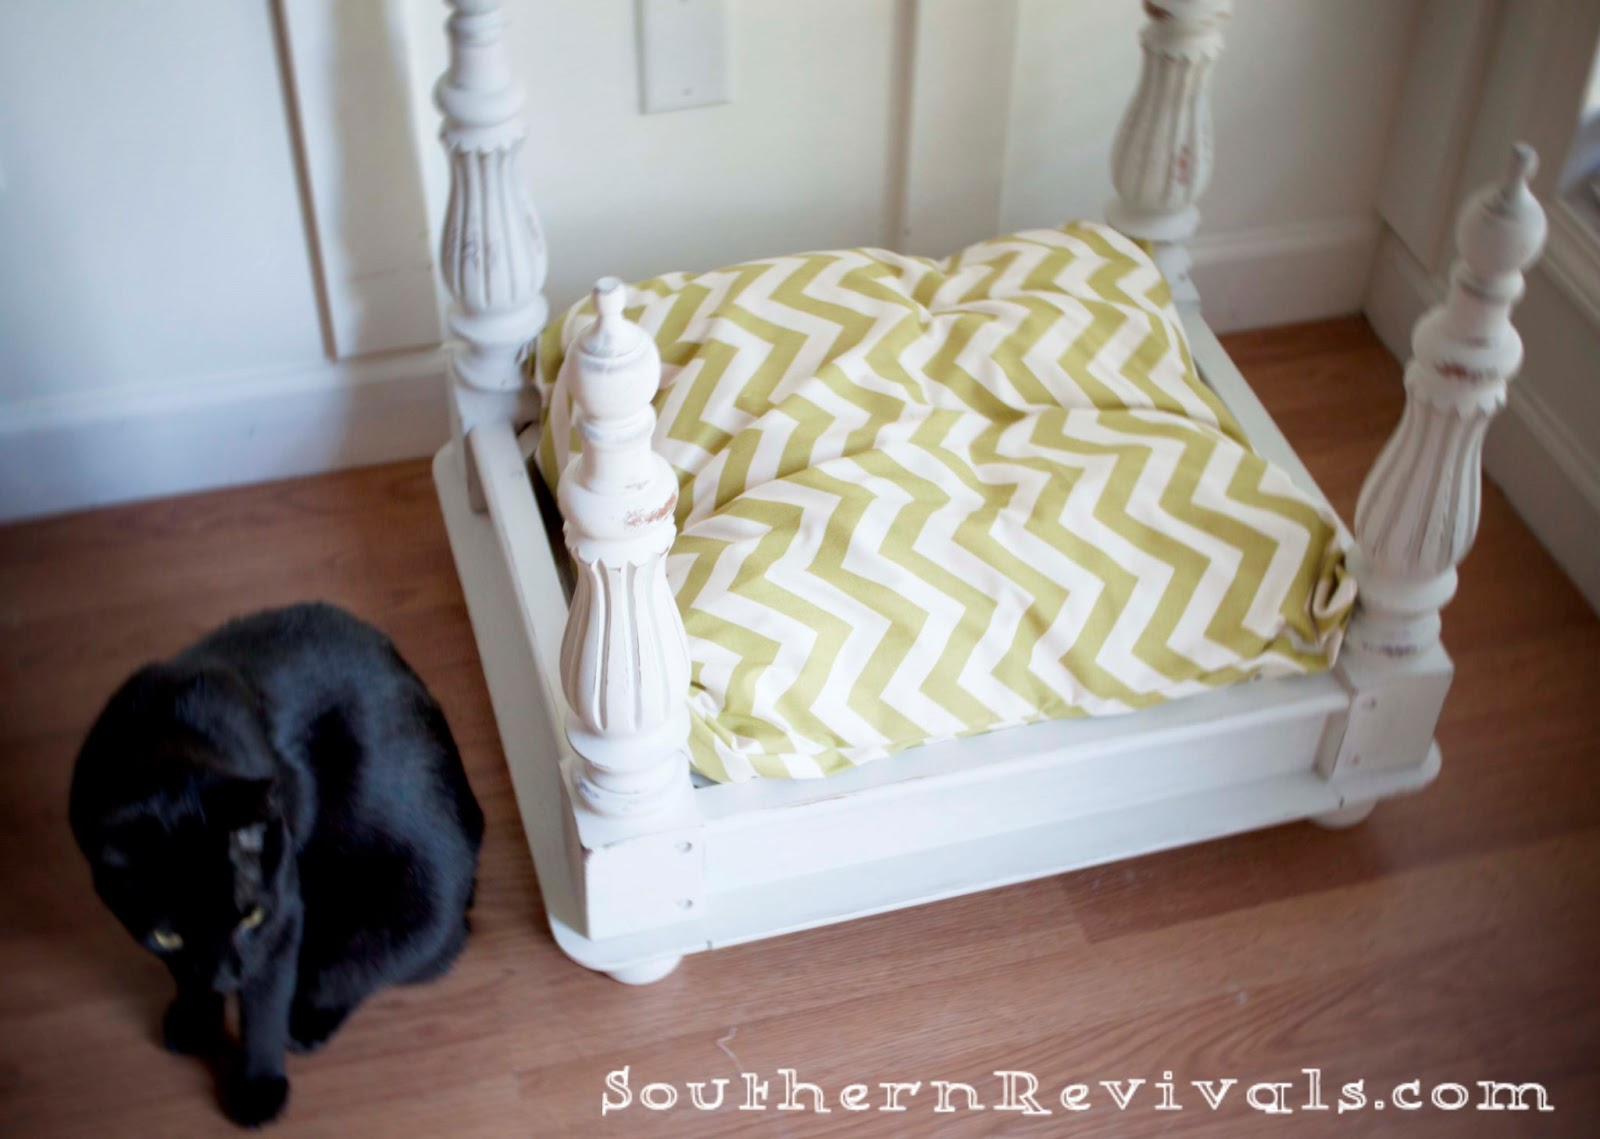 Diy end table pet bed southern revivals for Dog bed table